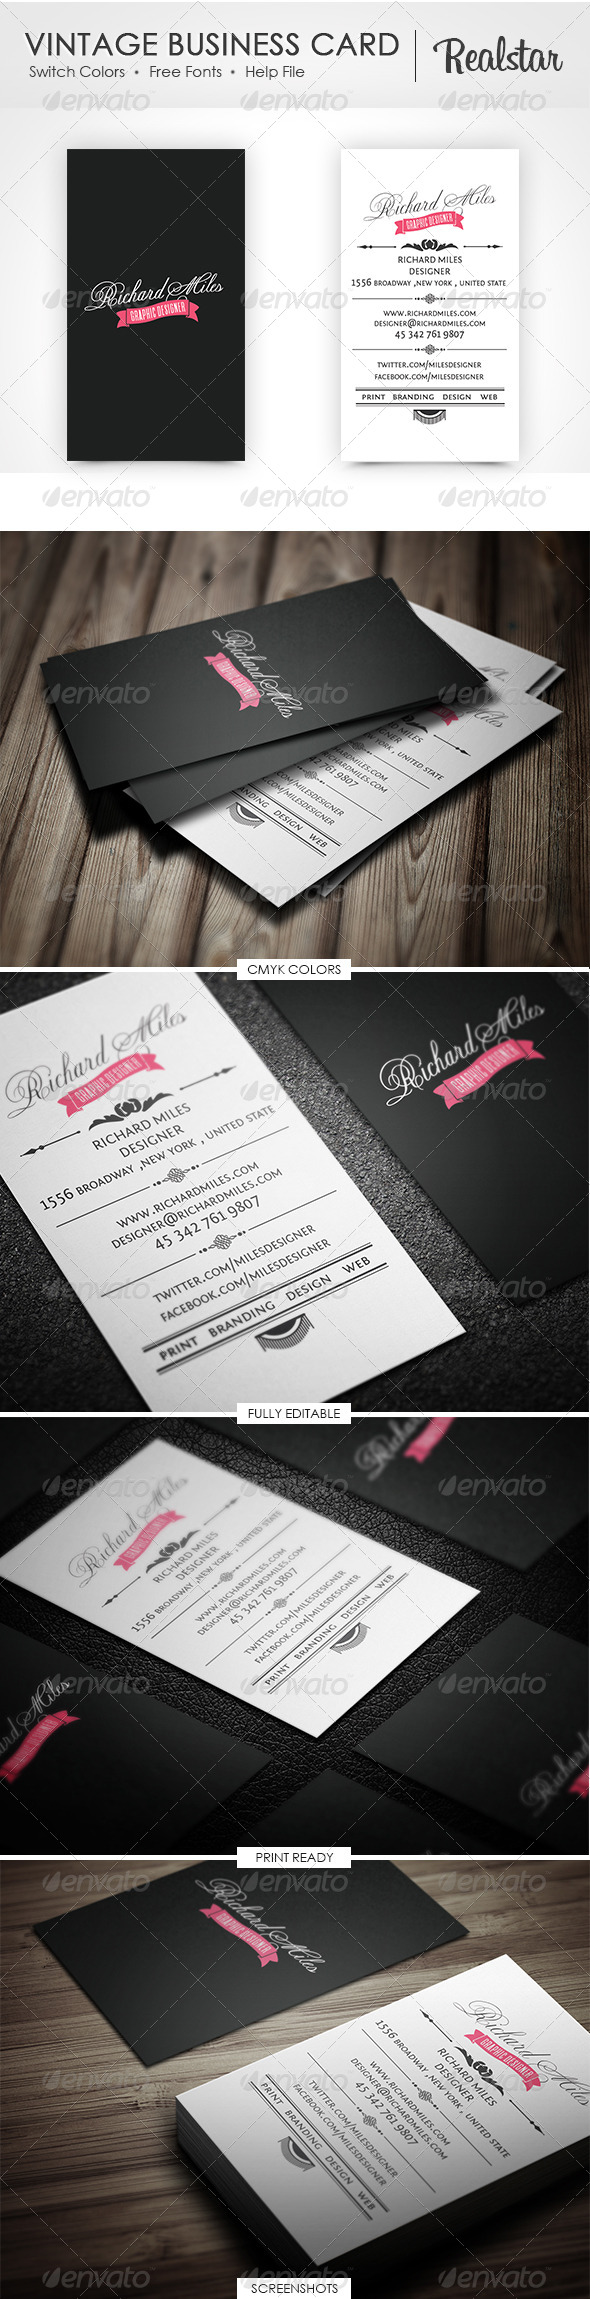 GraphicRiver Vintage Business Card 4554368